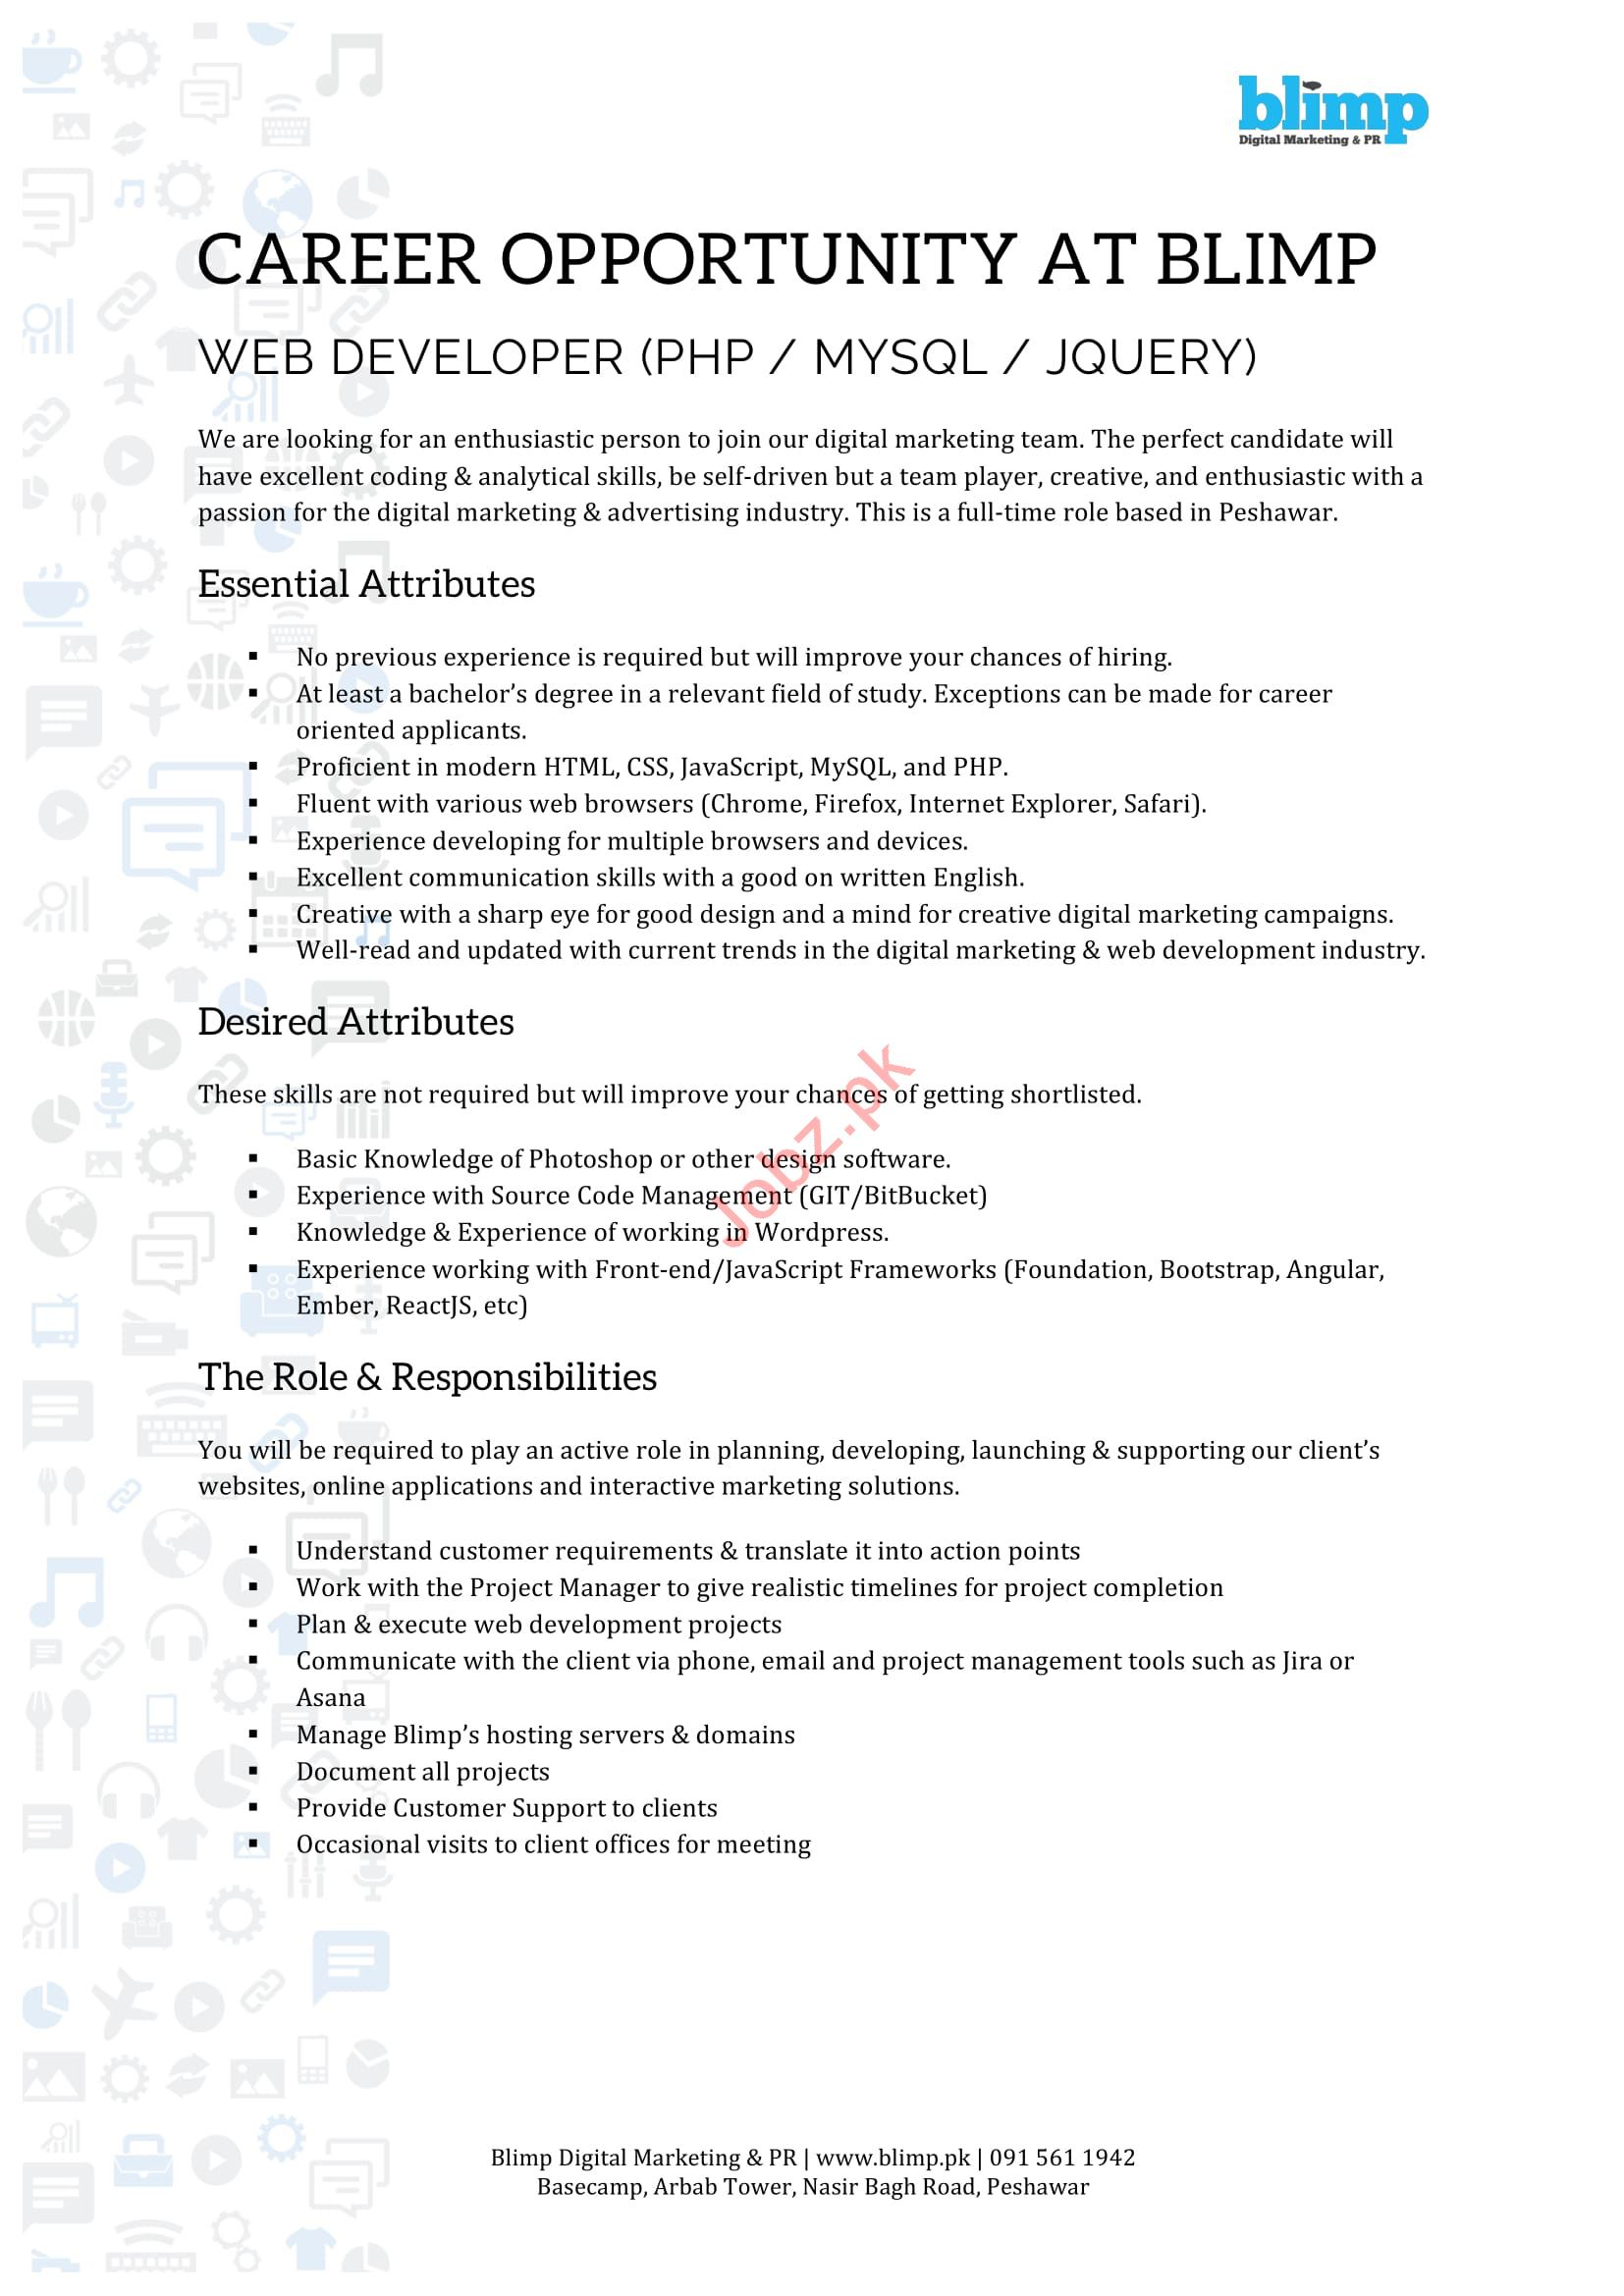 Blimp Peshawar Jobs 2019 for Web Developer